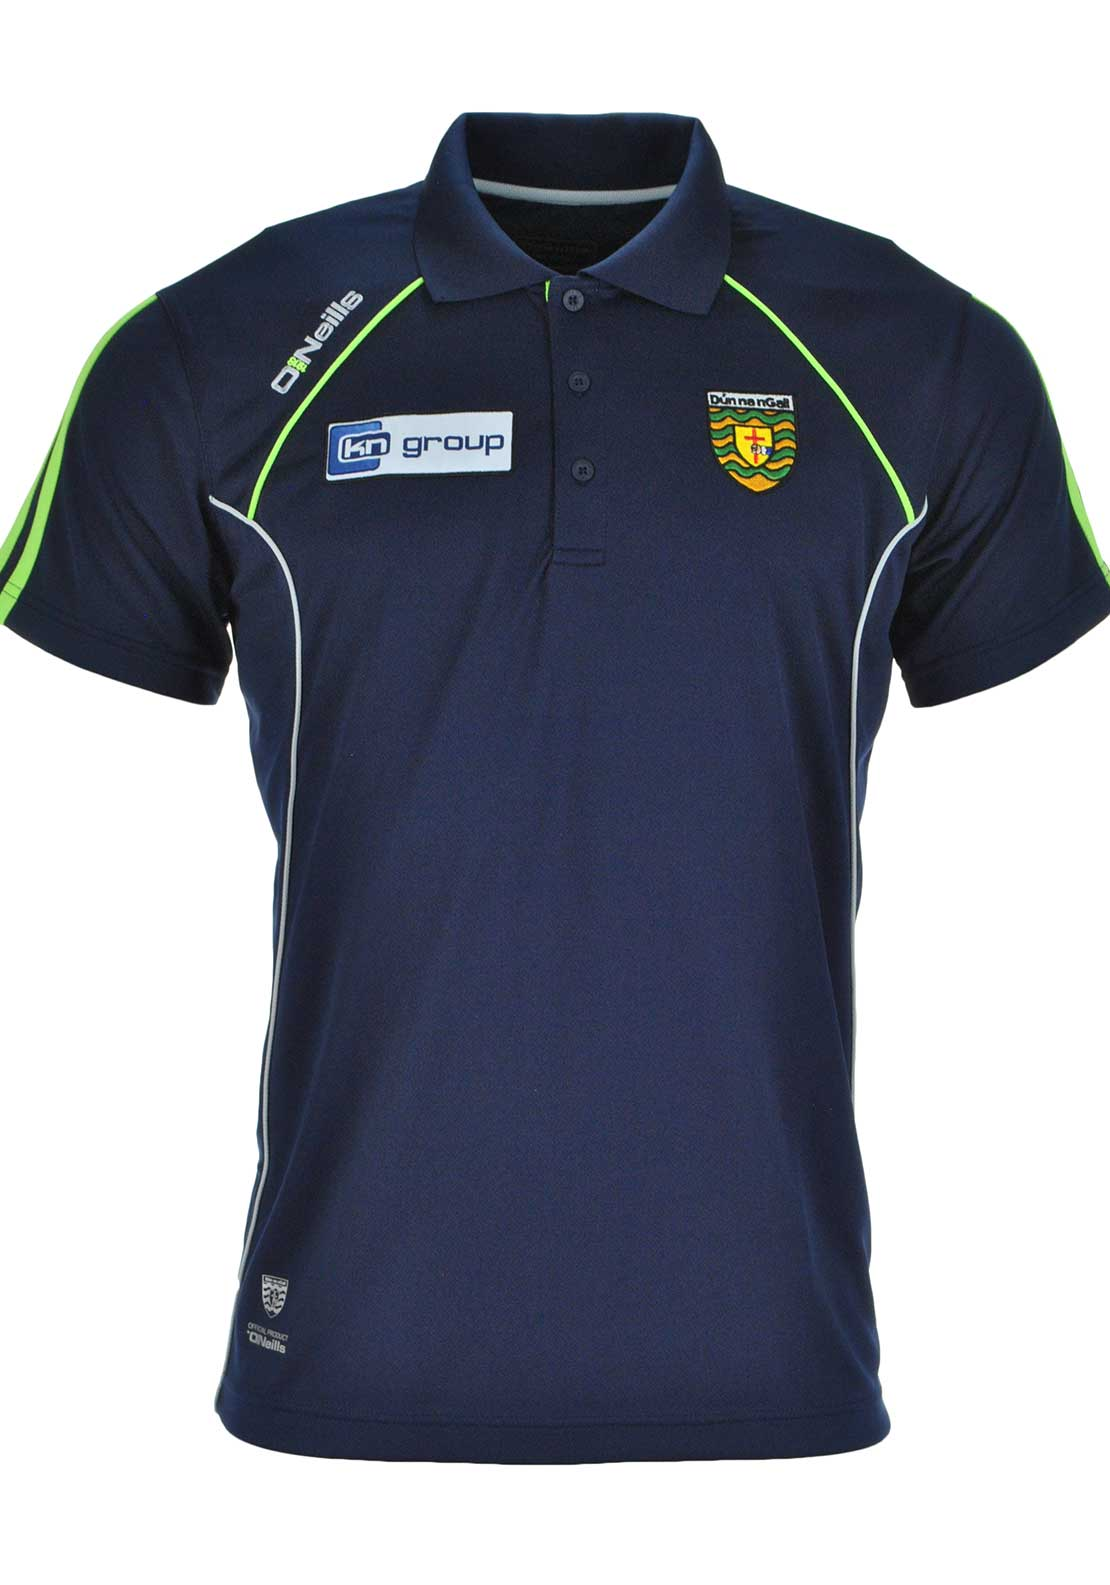 O'Neills Donegal GAA Adults Ormond Polo Shirt, Navy